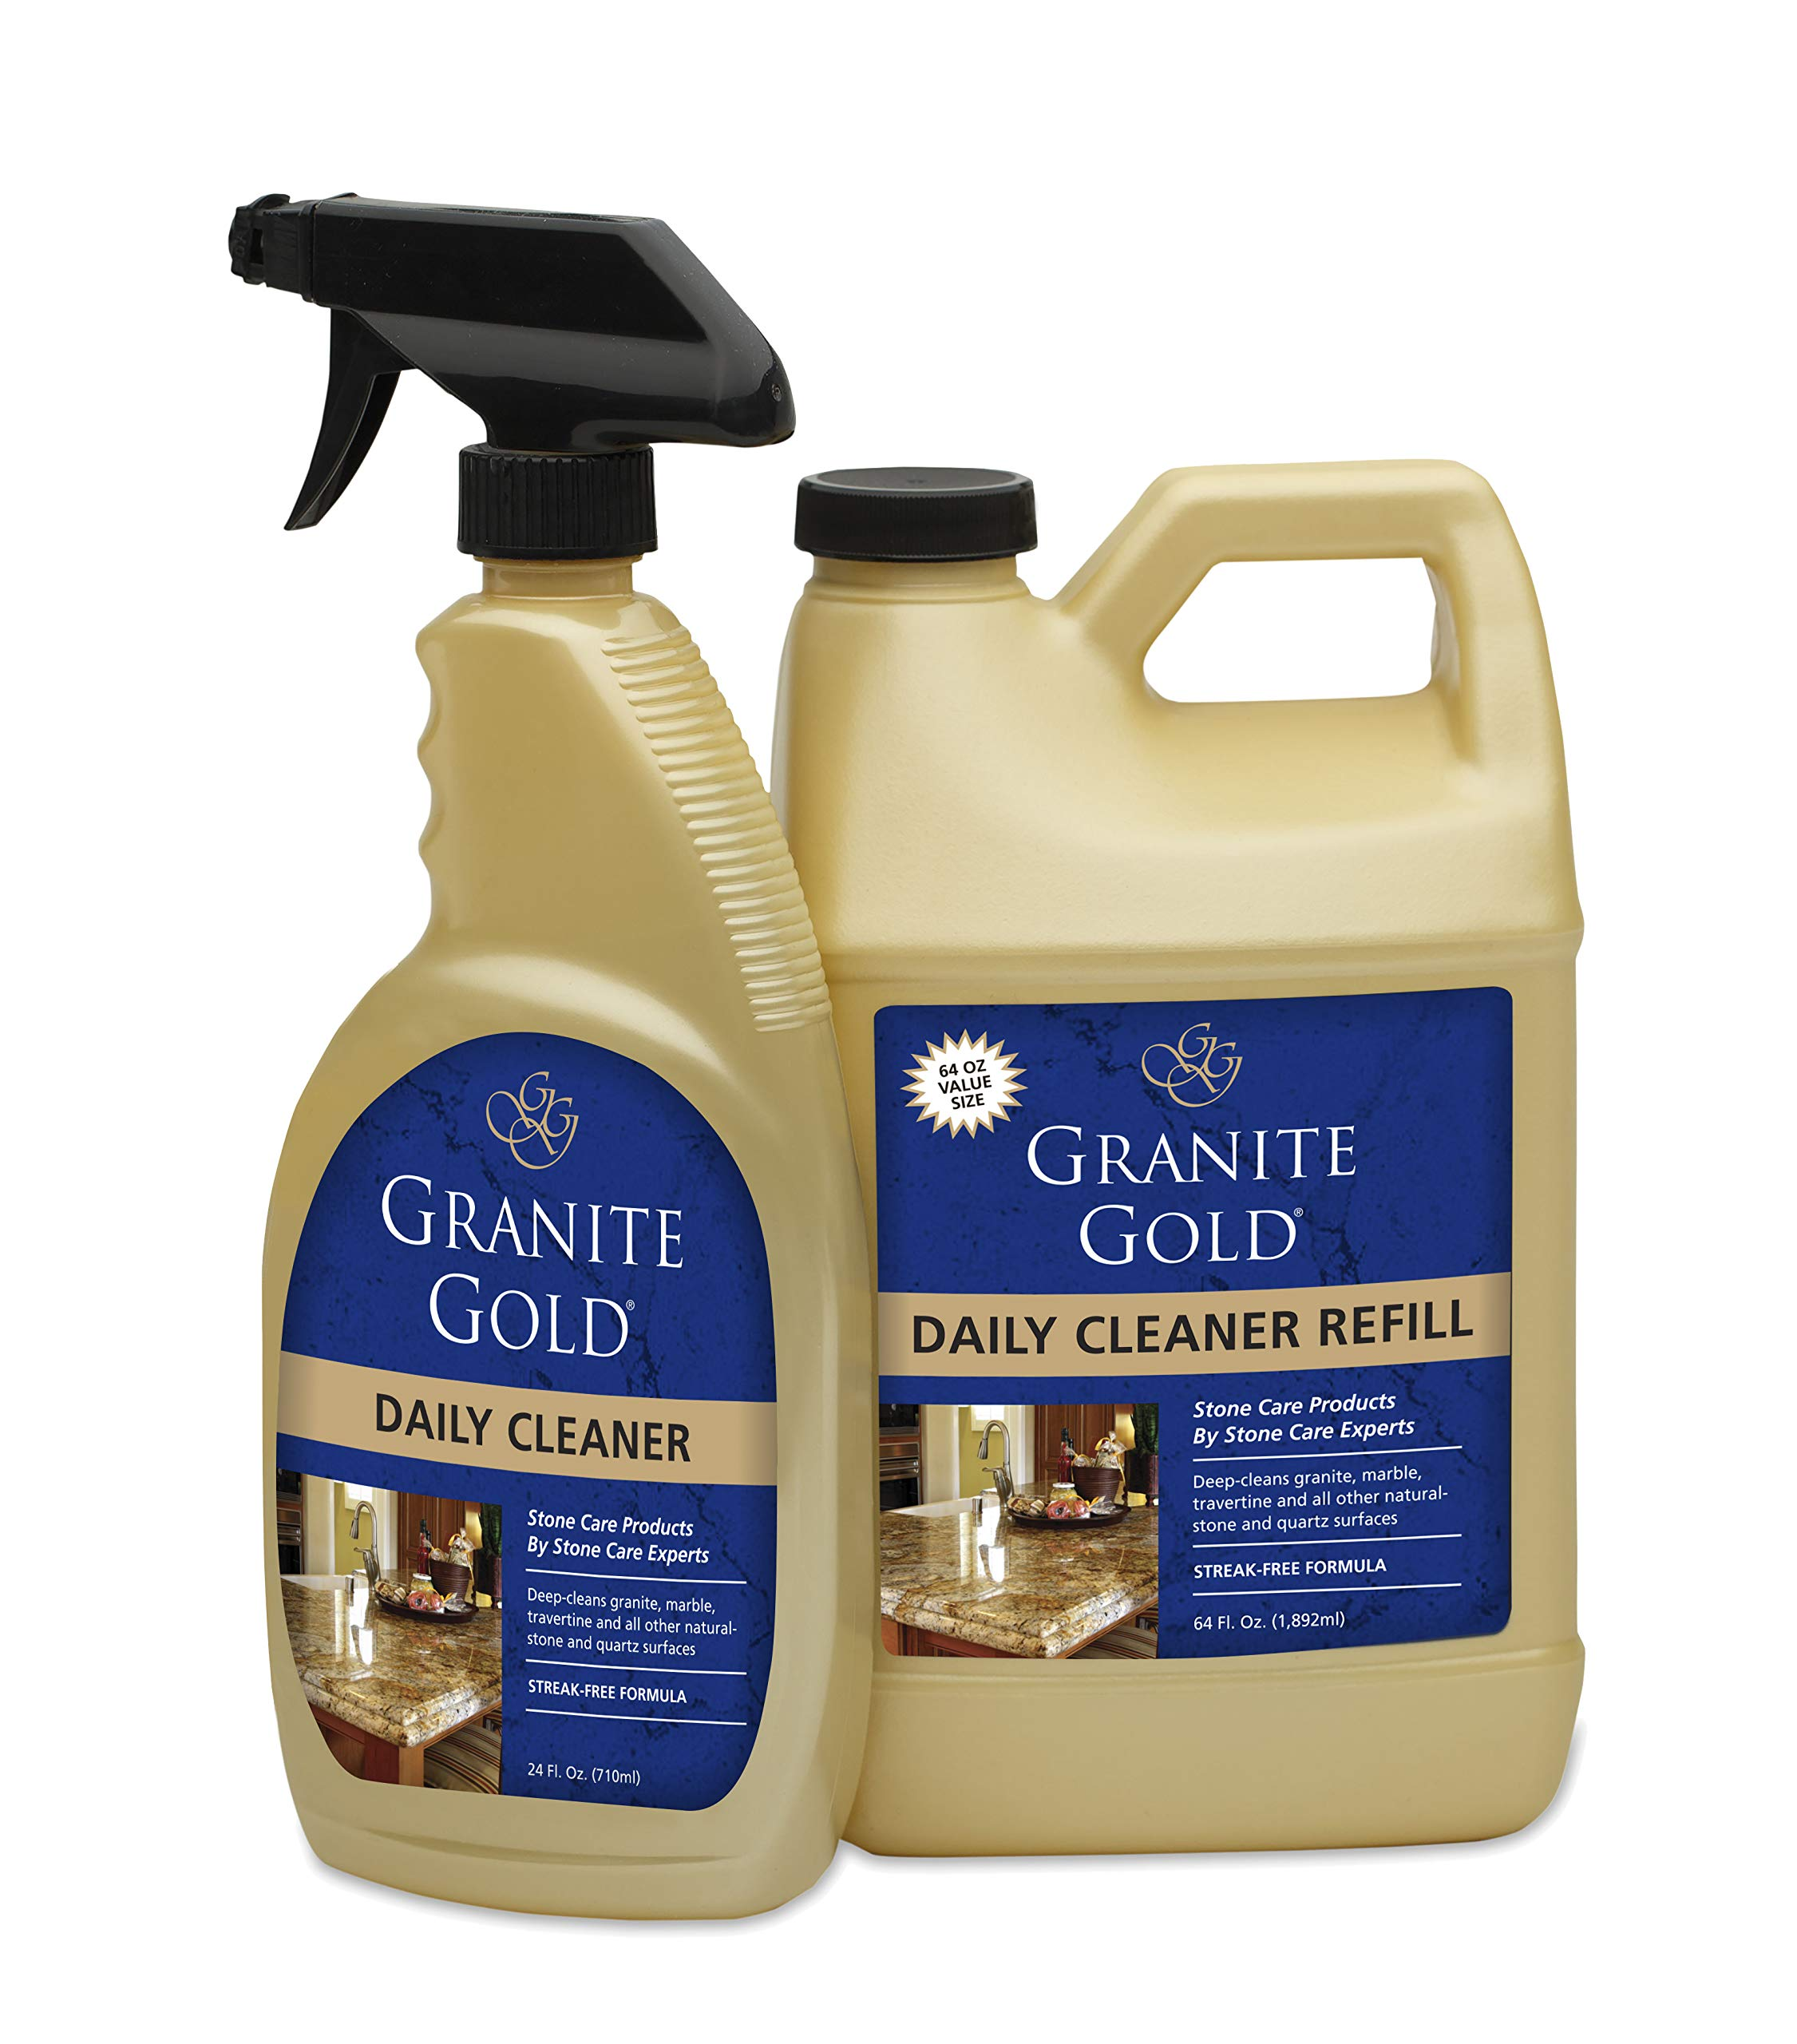 Granite Gold Daily Cleaner Spray And Refill Value Pack - Streak-Free Stone Cleaning Formula, Made In The USA by Granite Gold